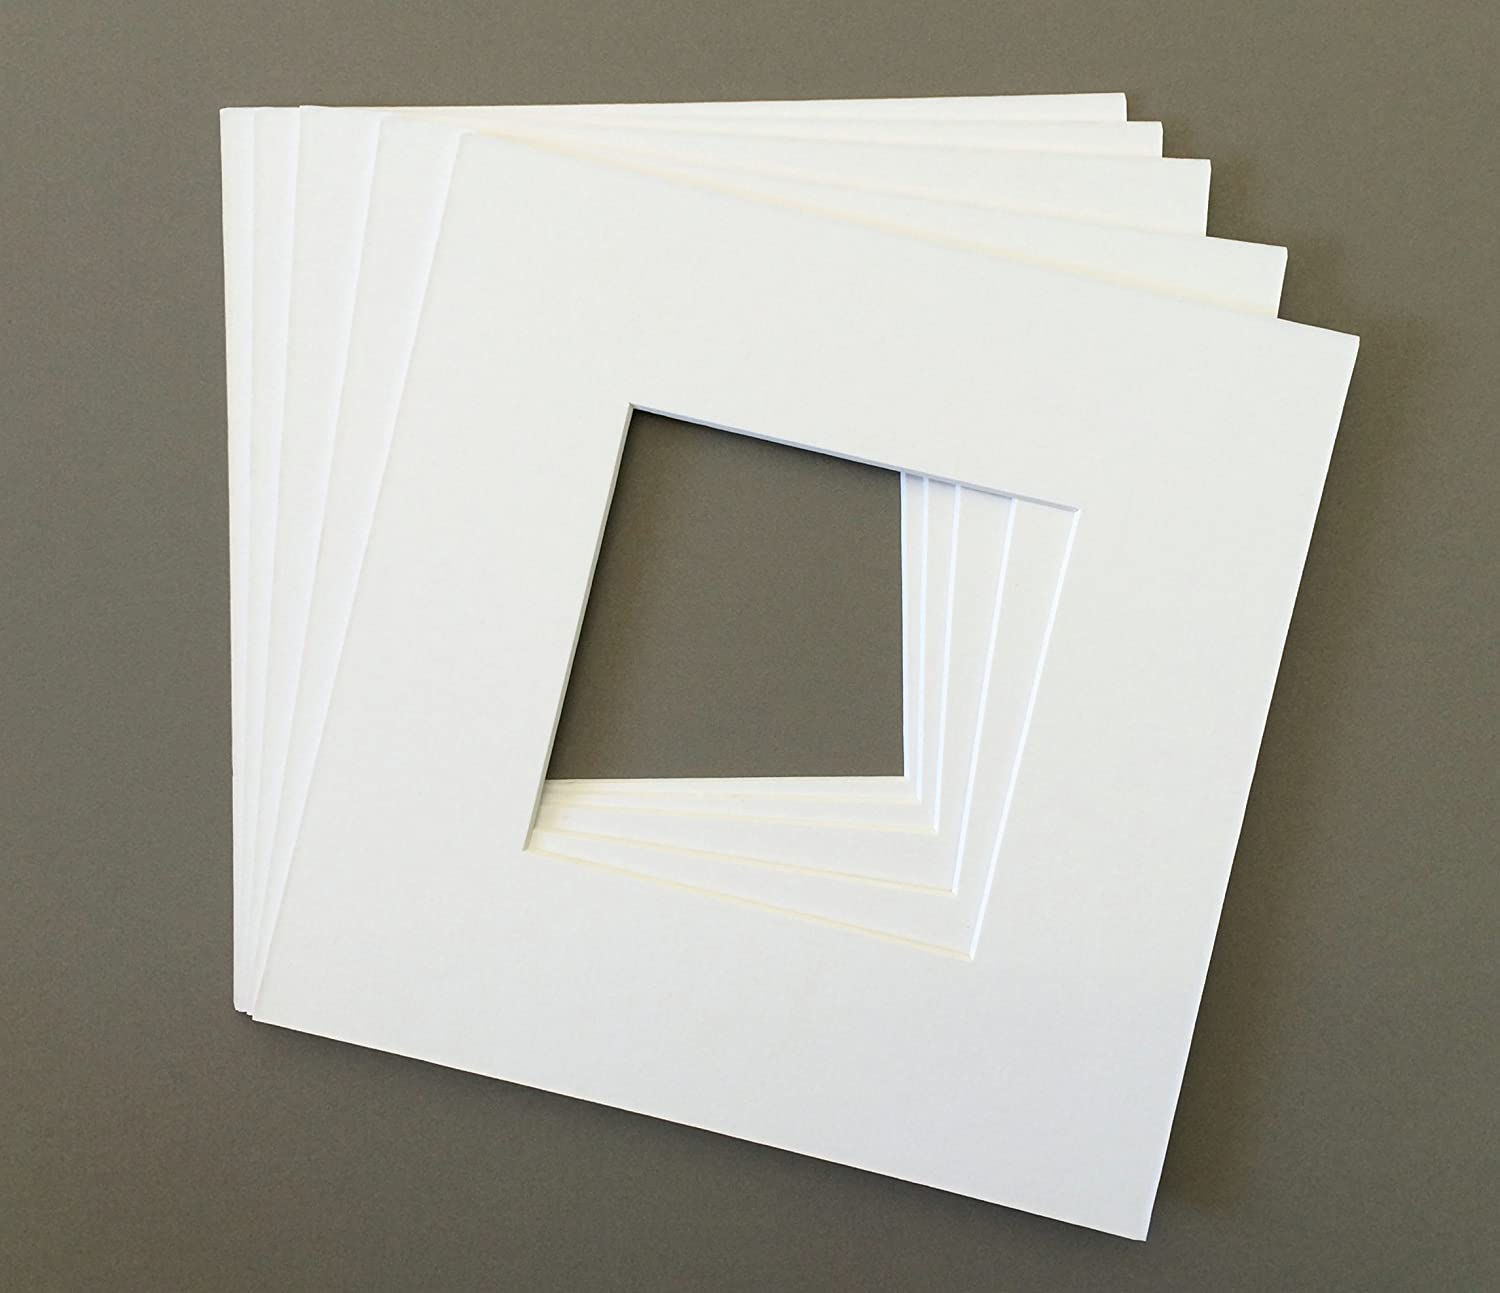 Pack of 5 8x8 Square White Picture Mats with White Core Bevel Cut for 4x4 Pictures